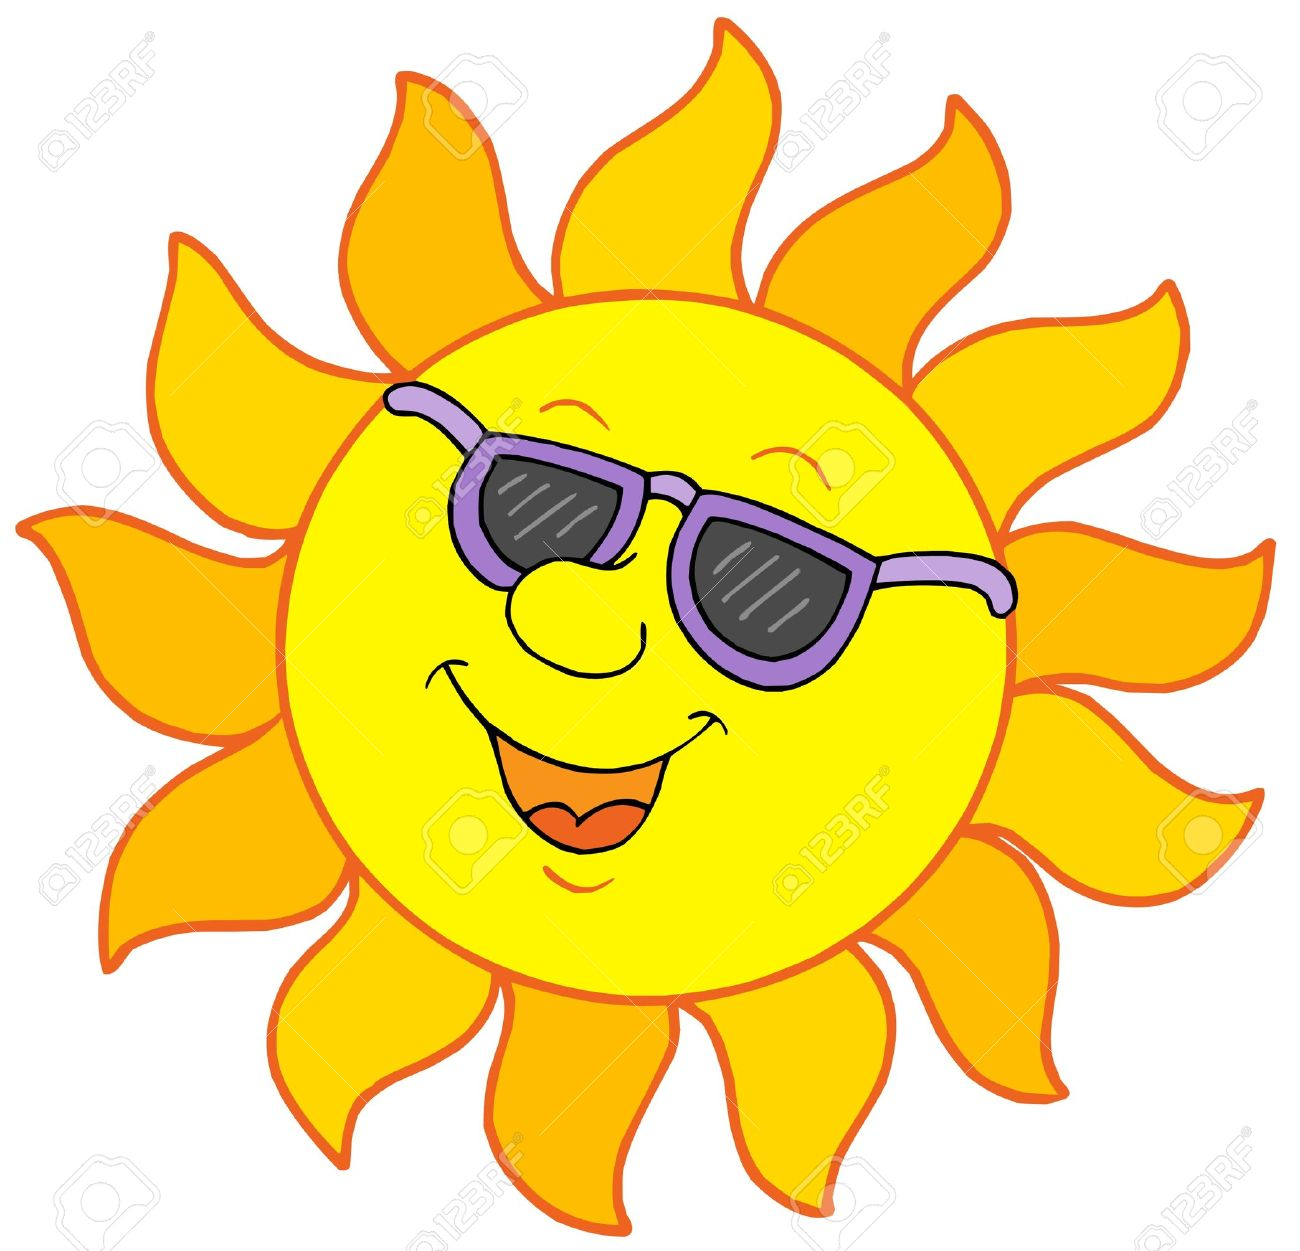 Sun With Sunglasses Vector Illustration Royalty Free Cliparts